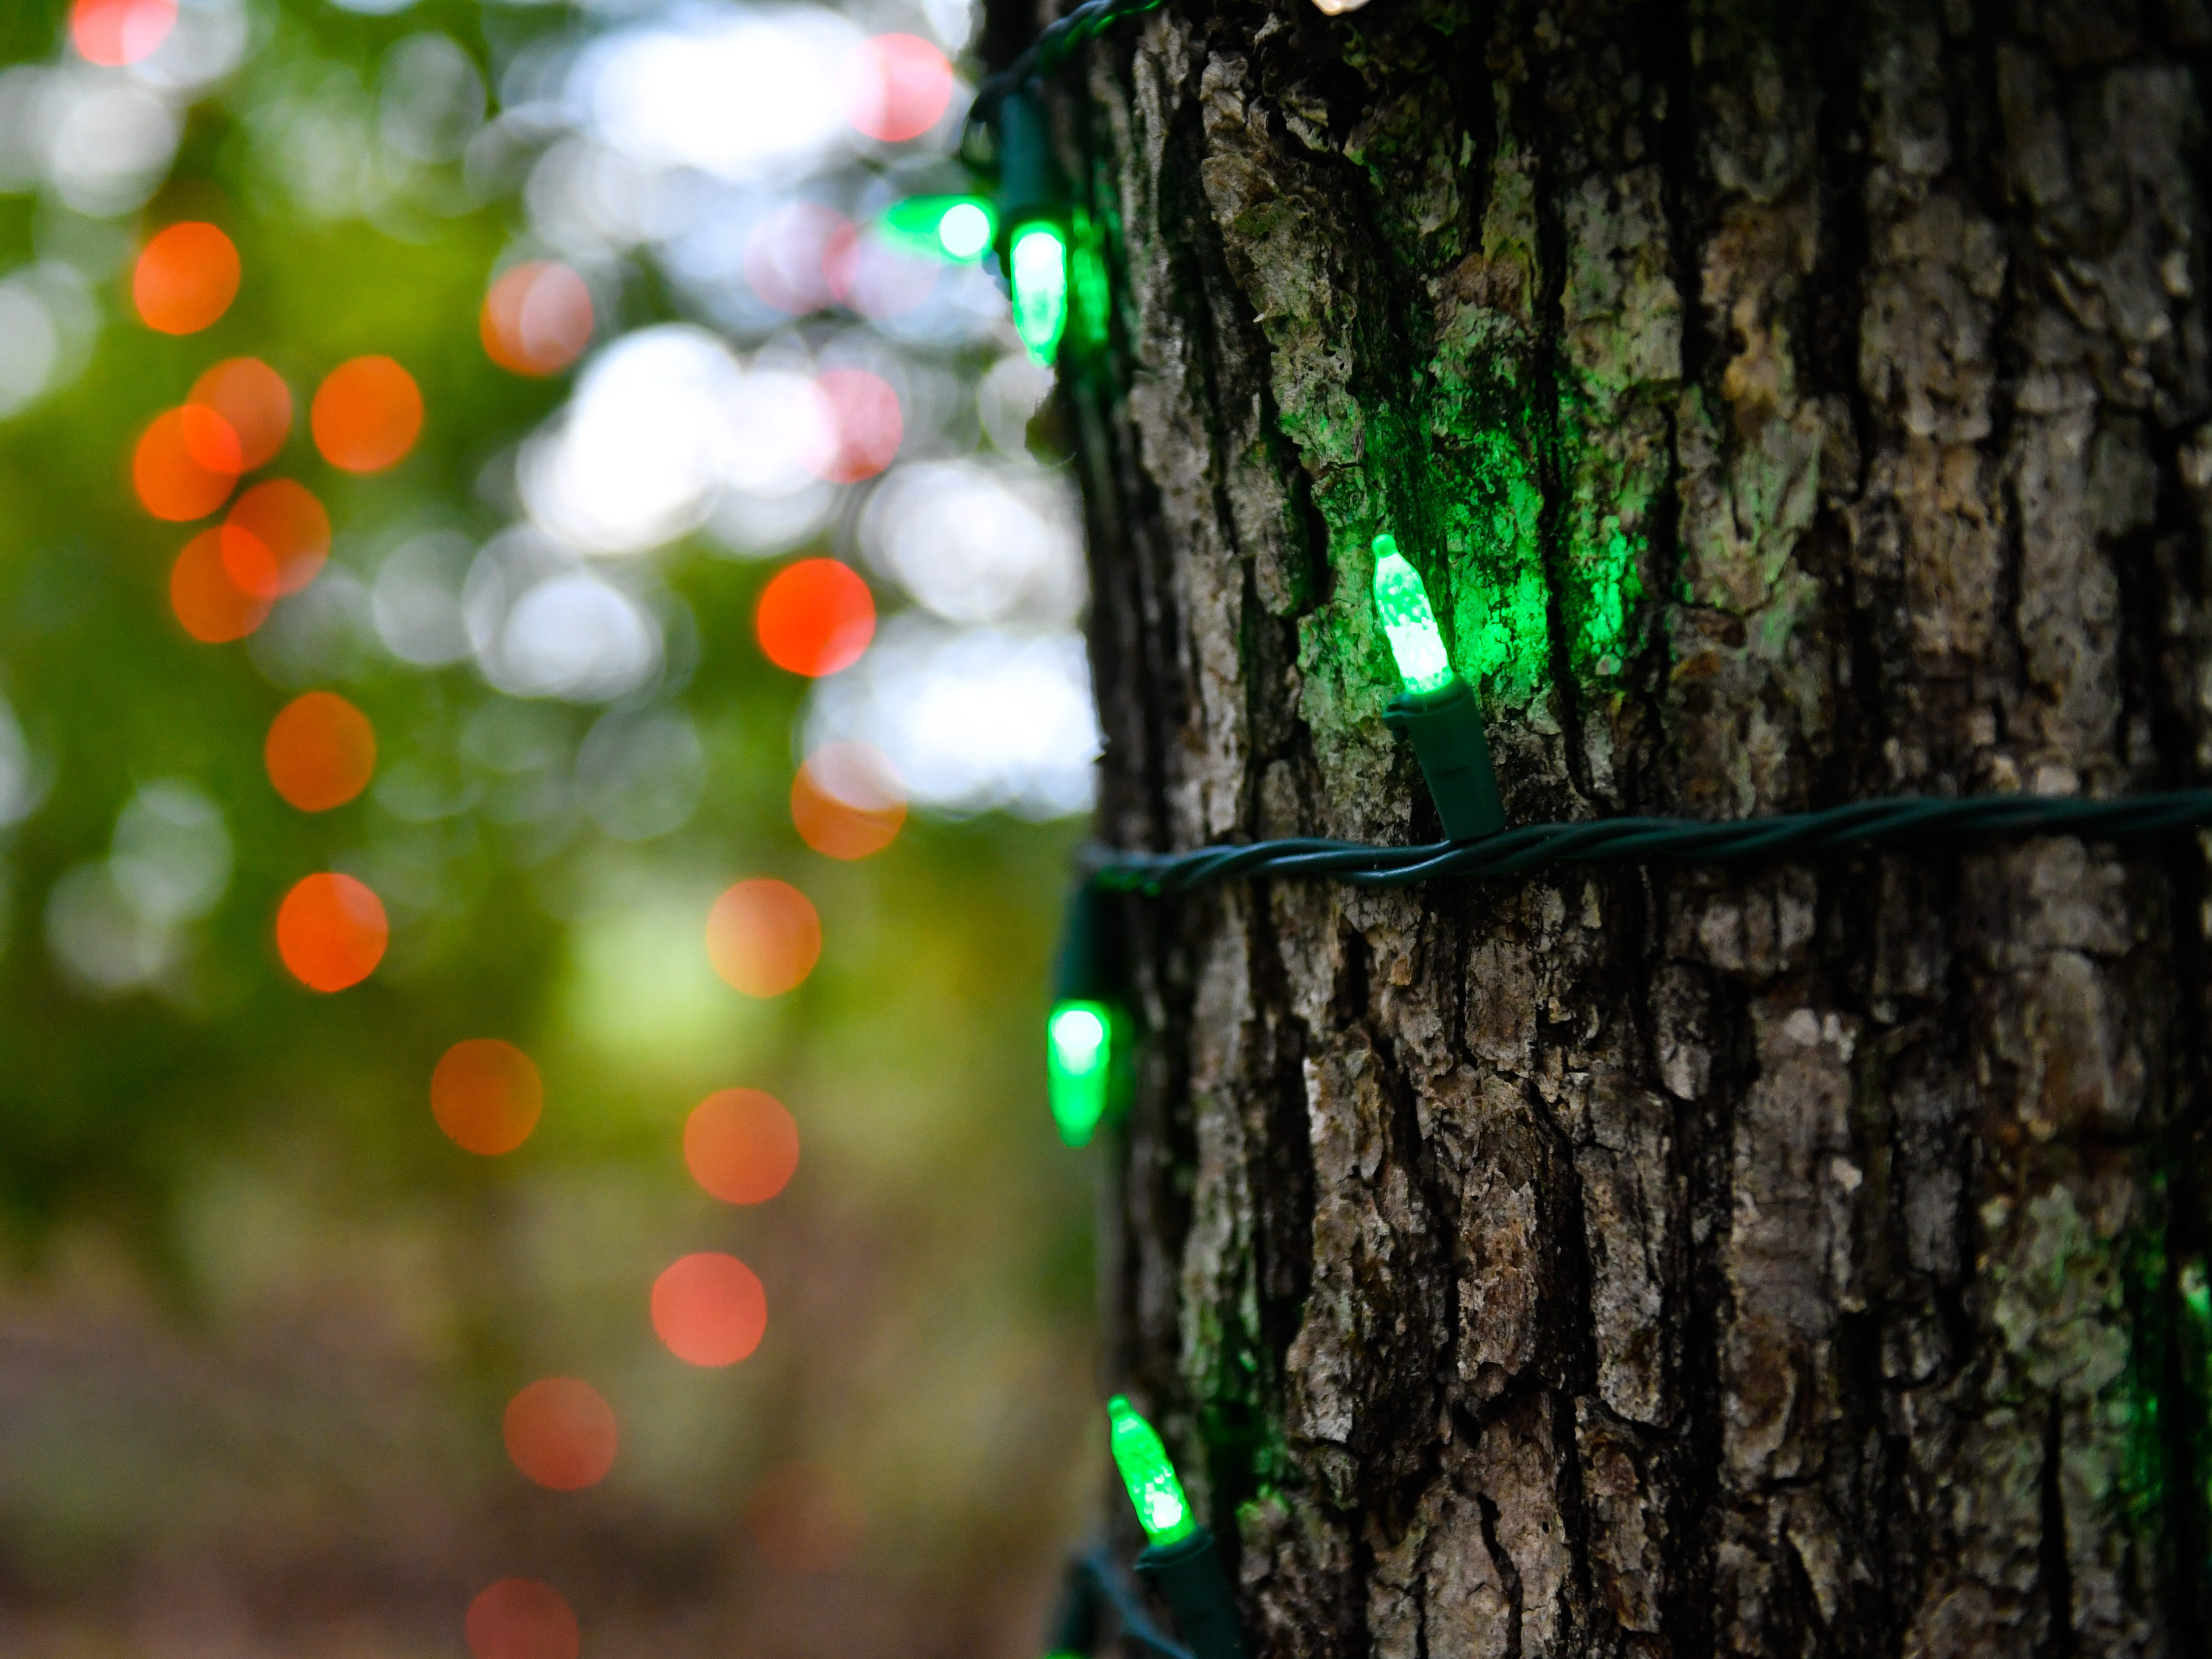 After it's completely set up, Christmas Magic will have over 600,000 lights up.